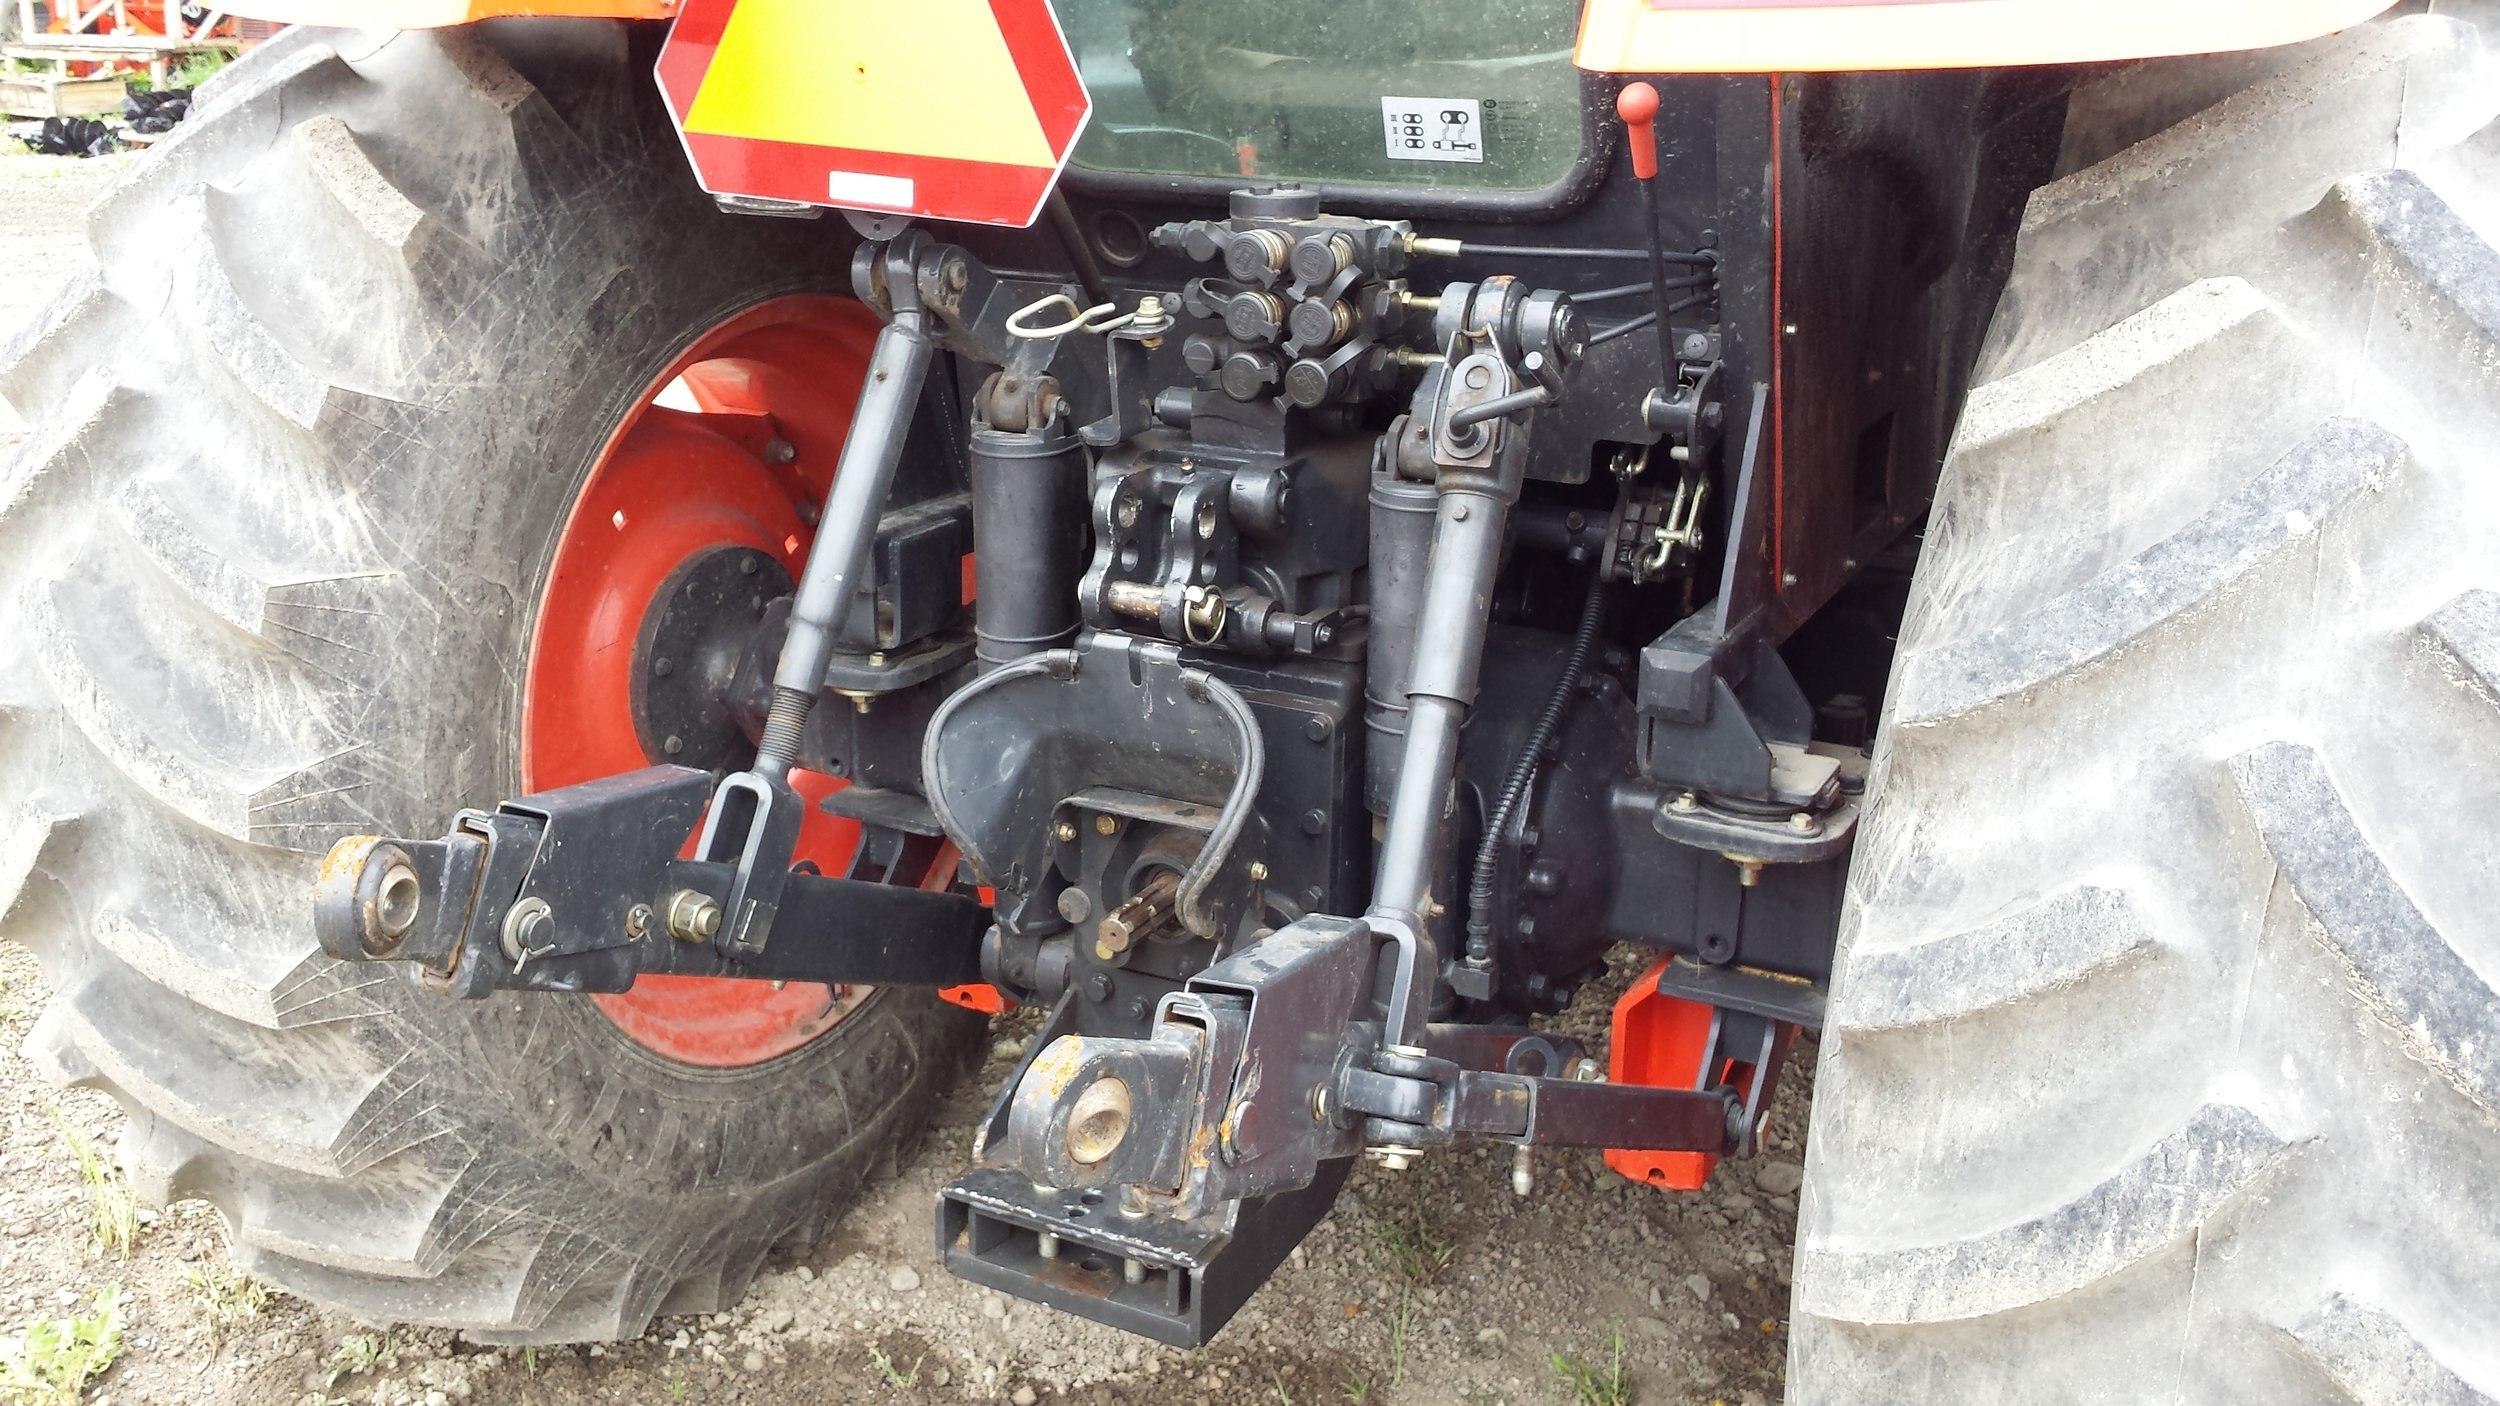 RX7320 Vernon tractor dealer timberstar tractor rear 3pt hitch.jpg